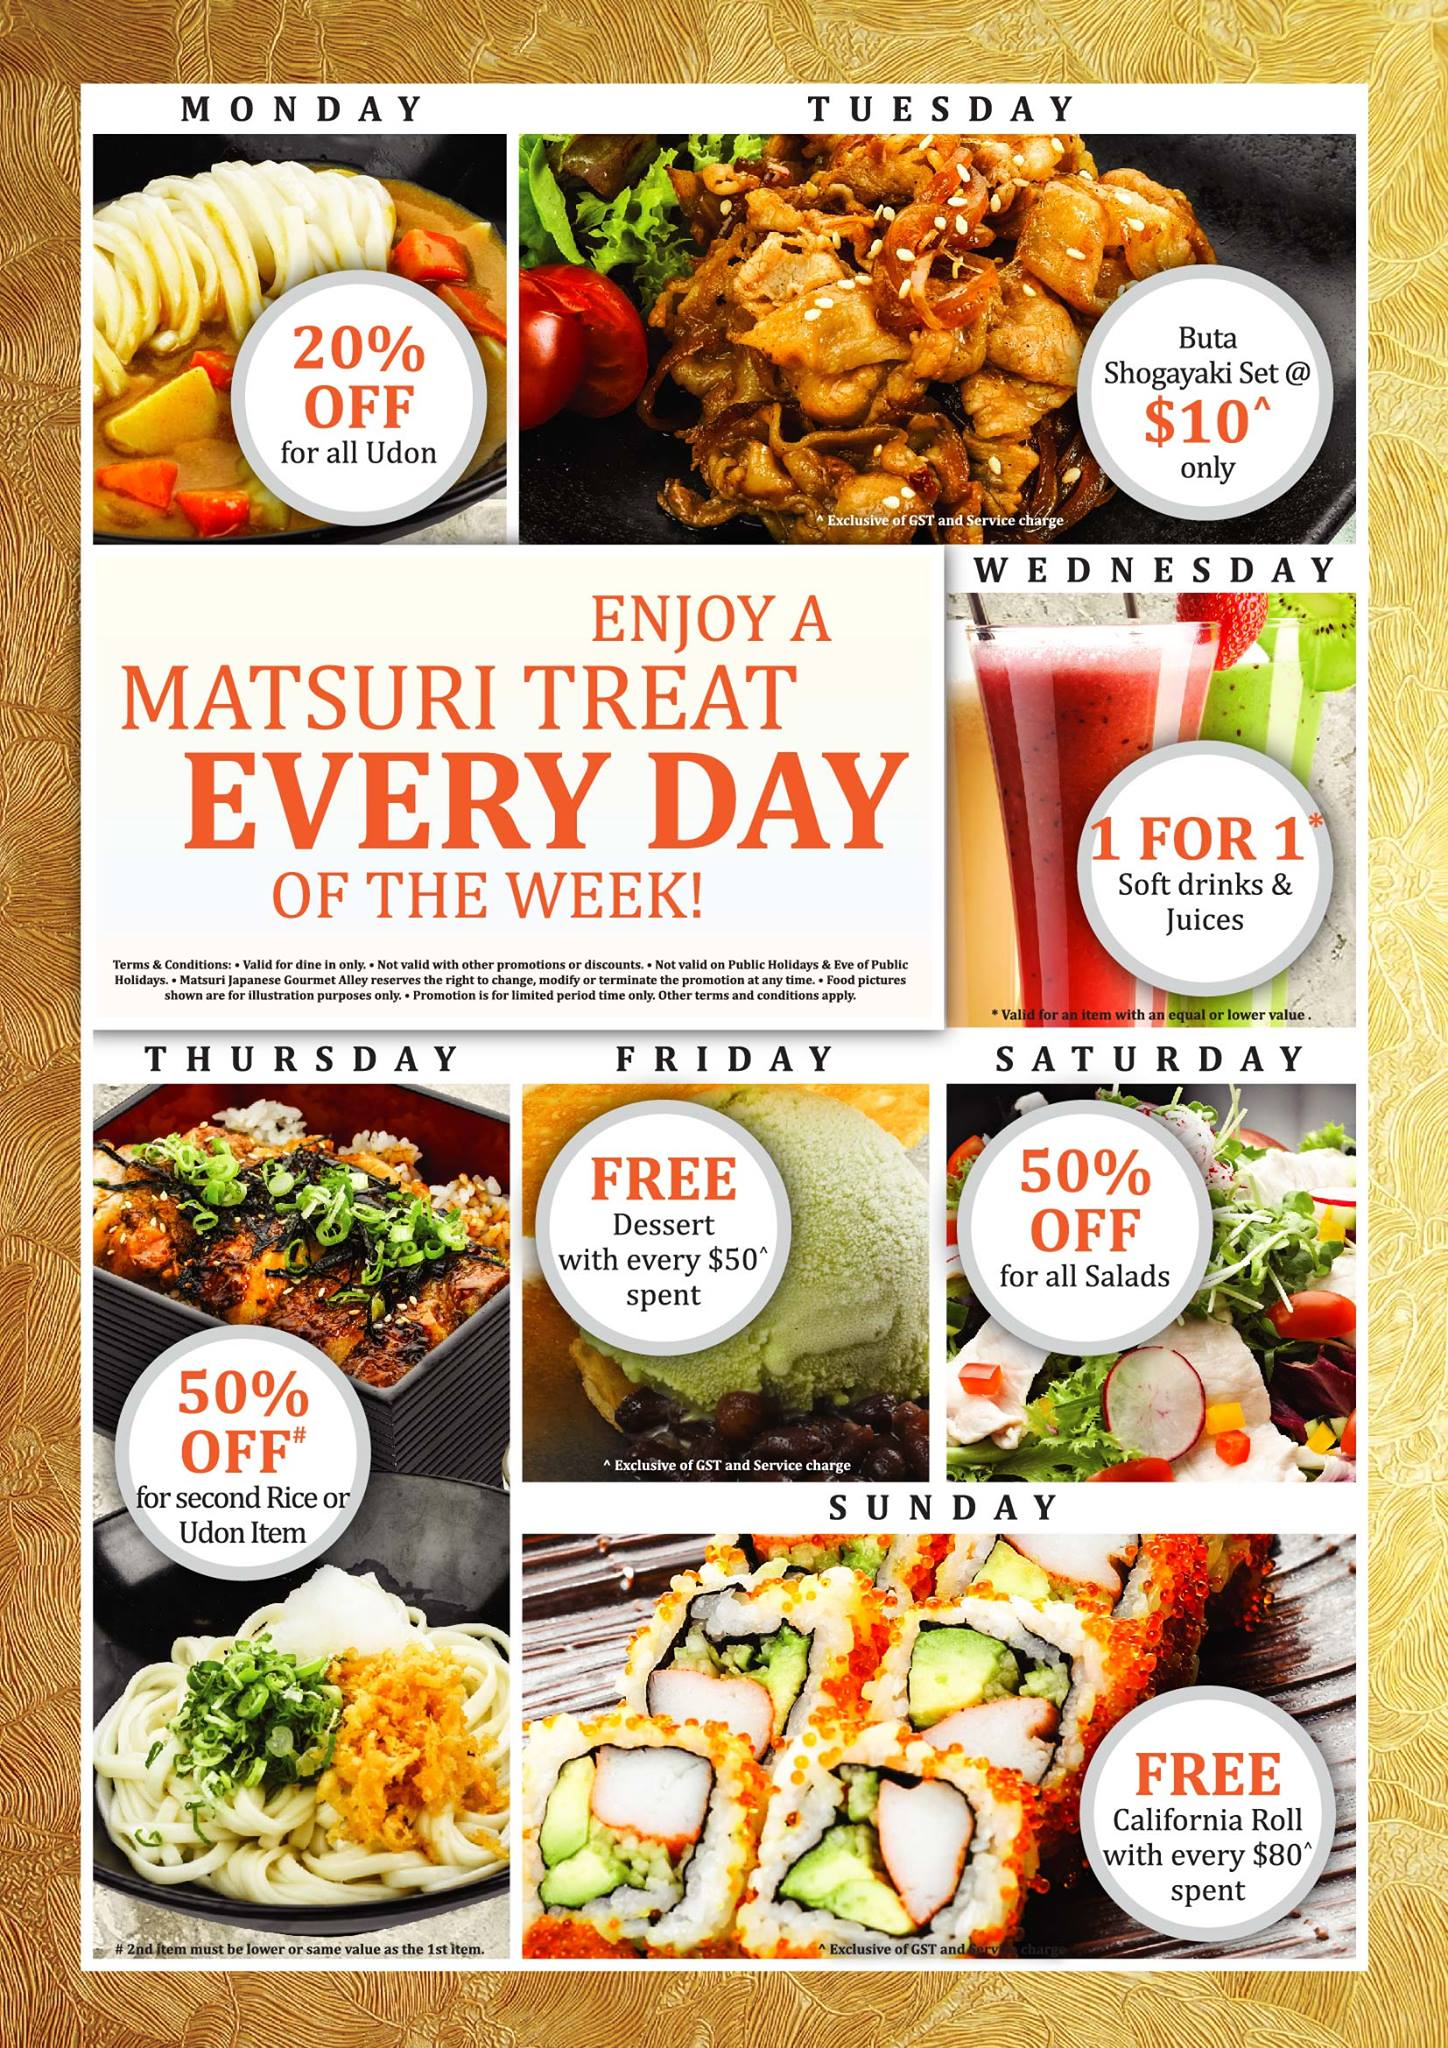 Matsuri Japanese Gourmet Alley Daily Treats @ RWS: Discounts, Free Food, 1-For-1 Deals & More